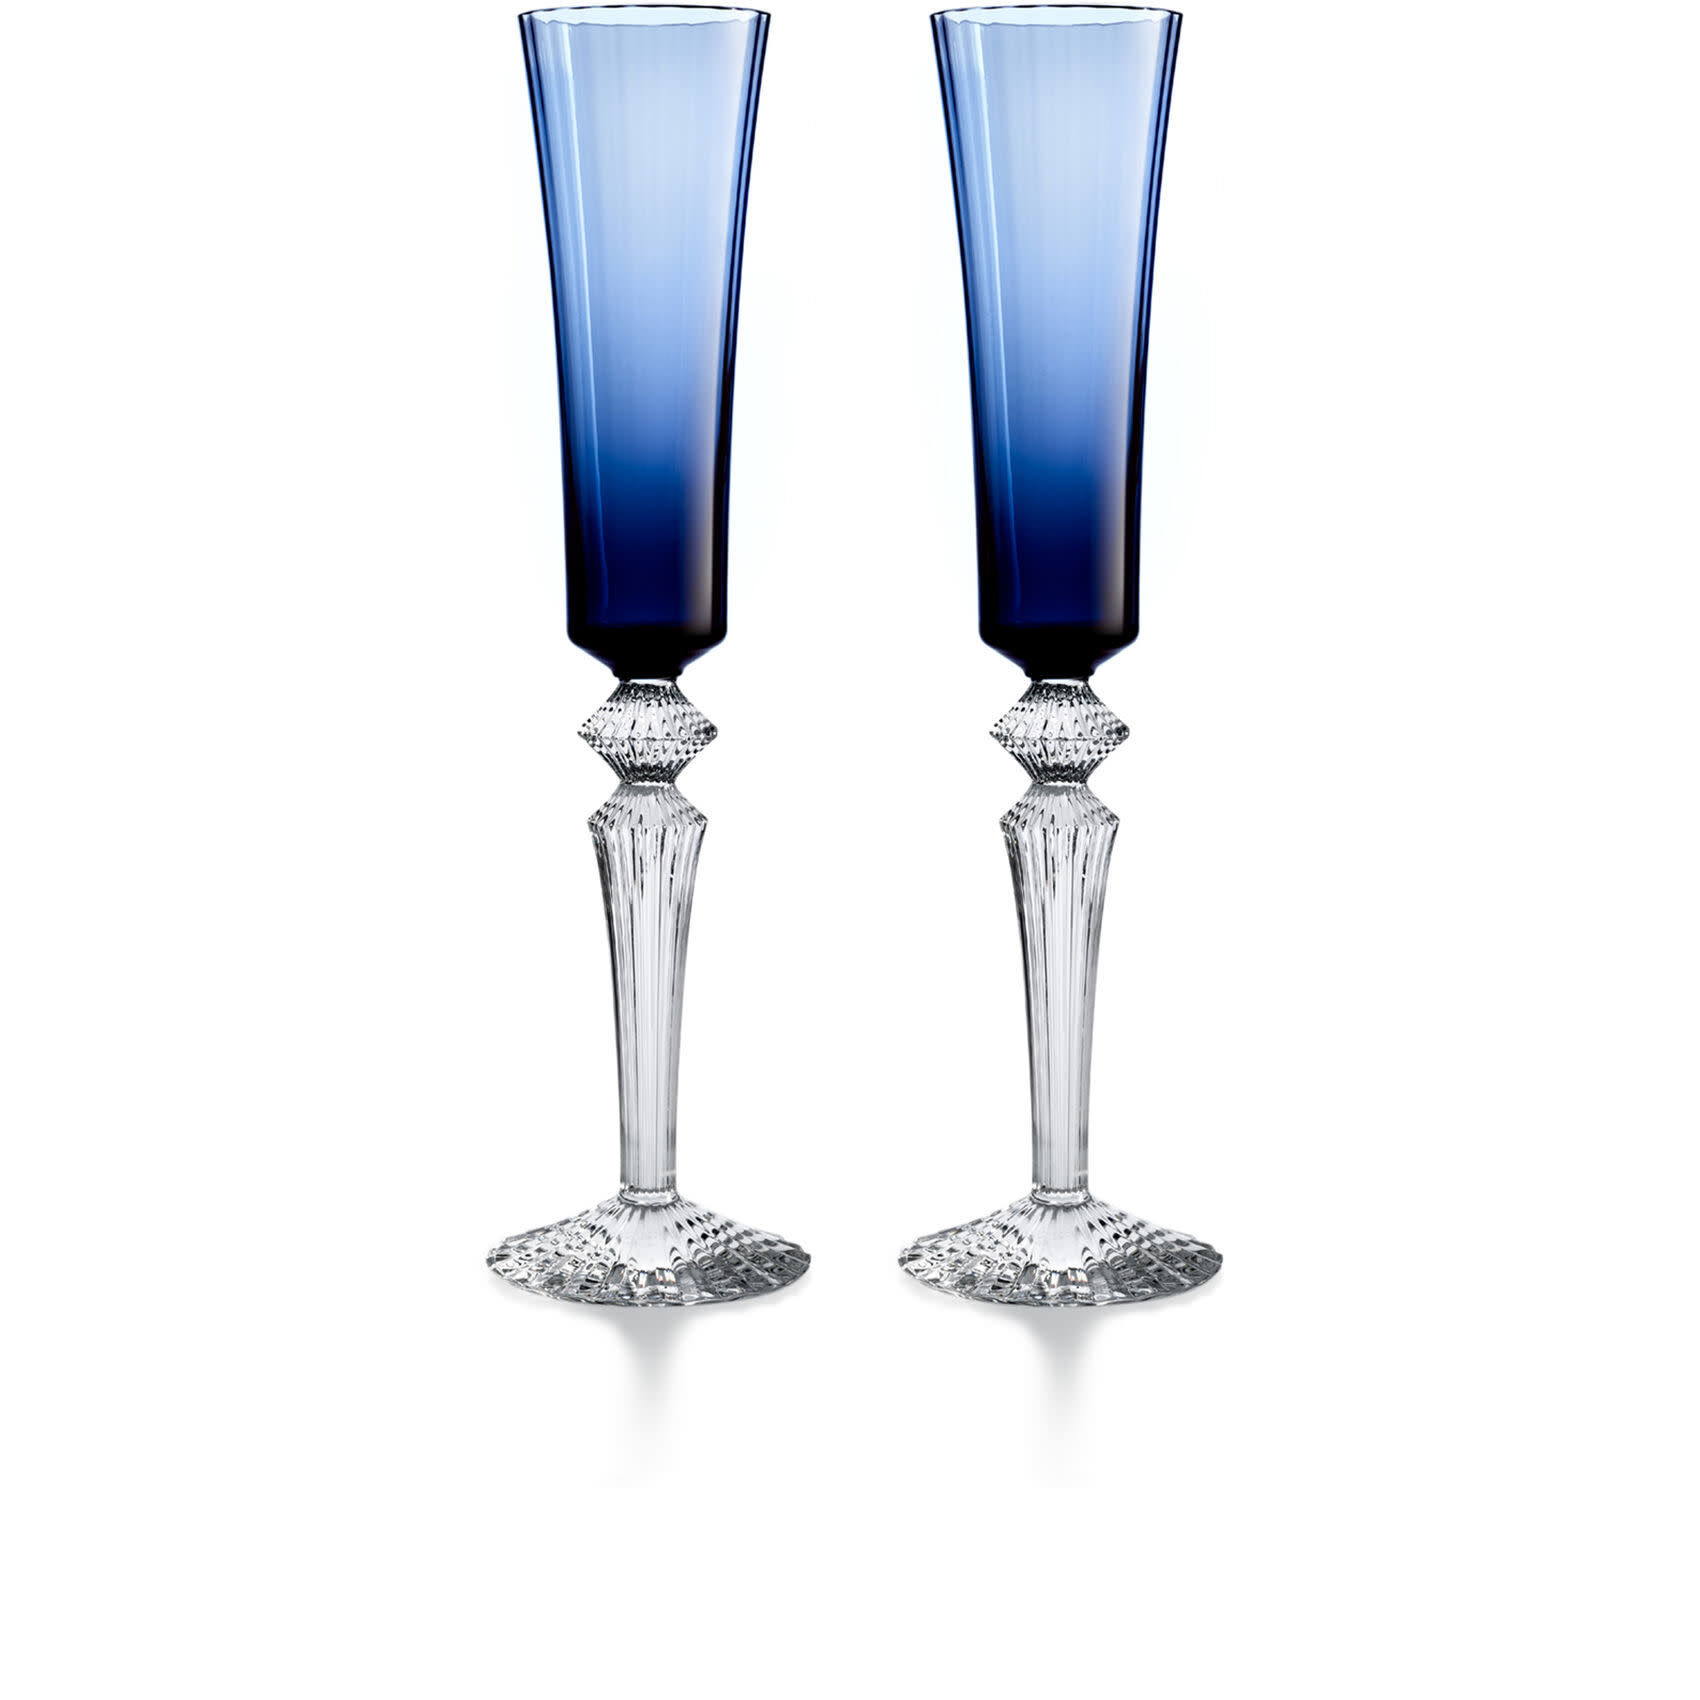 Baccarat Mille Nuits S/2 Flutissimo Midnight Blue